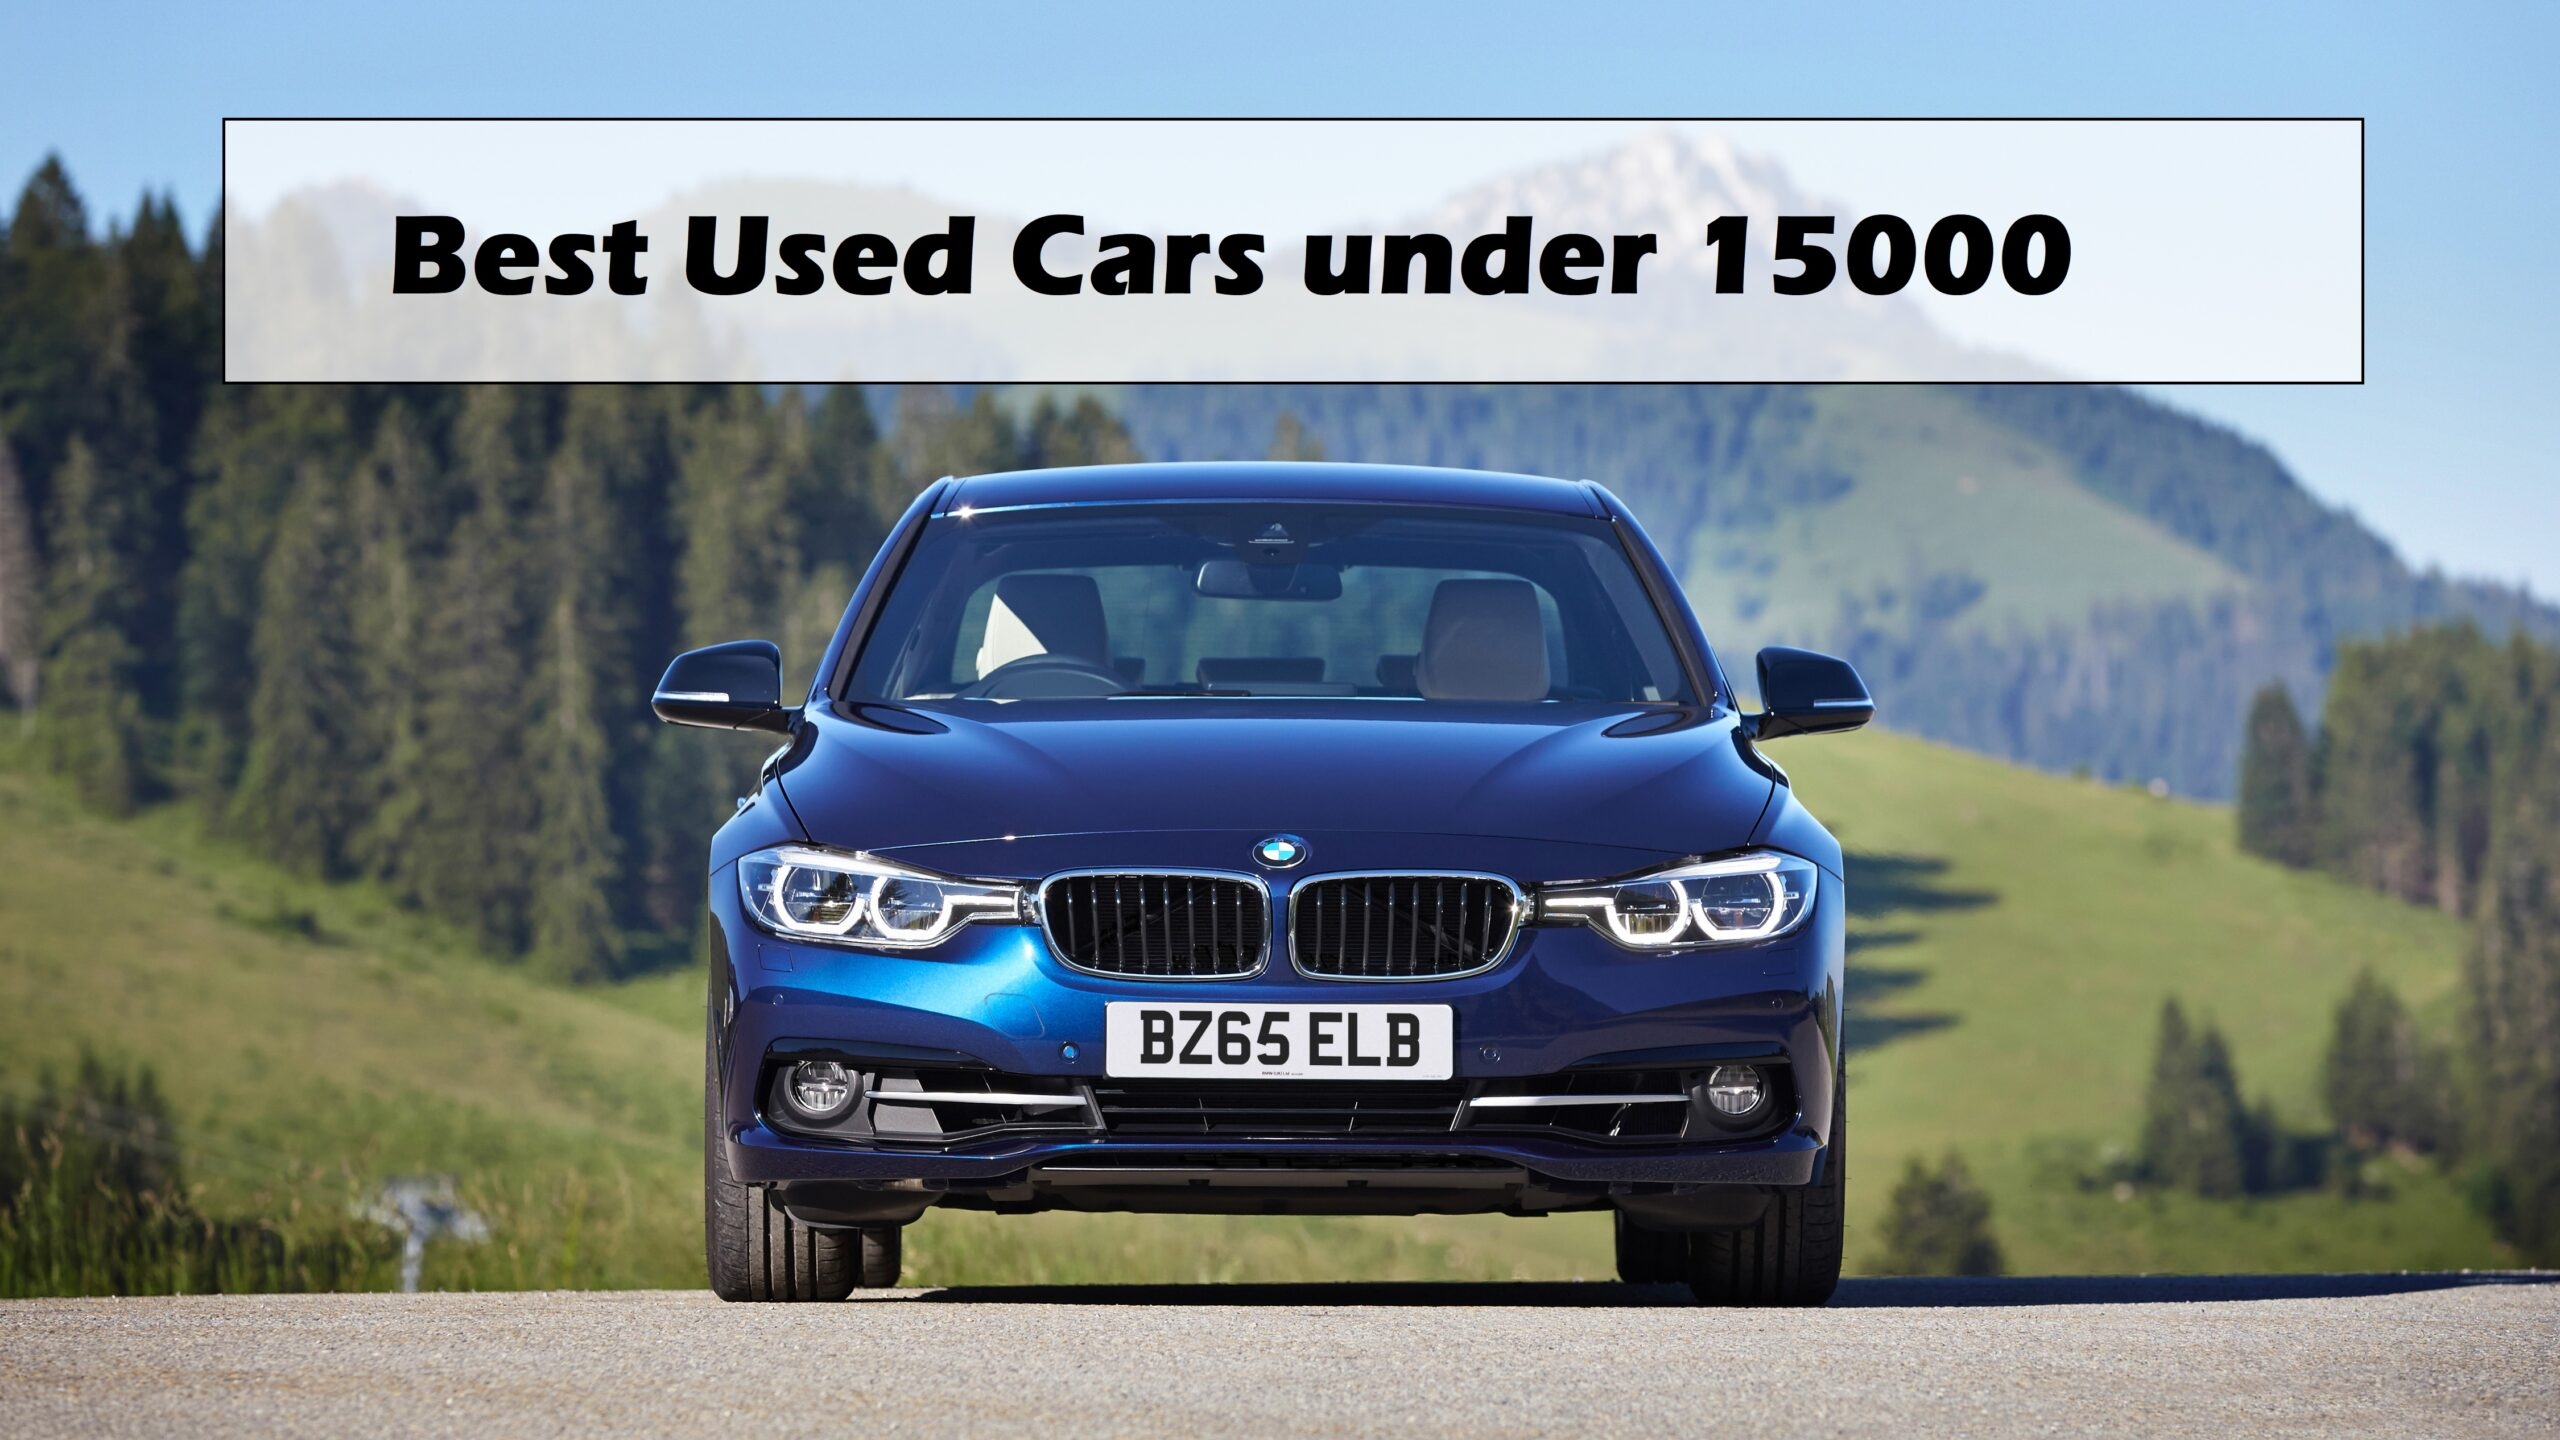 best-used-cars-under-15000-scaled